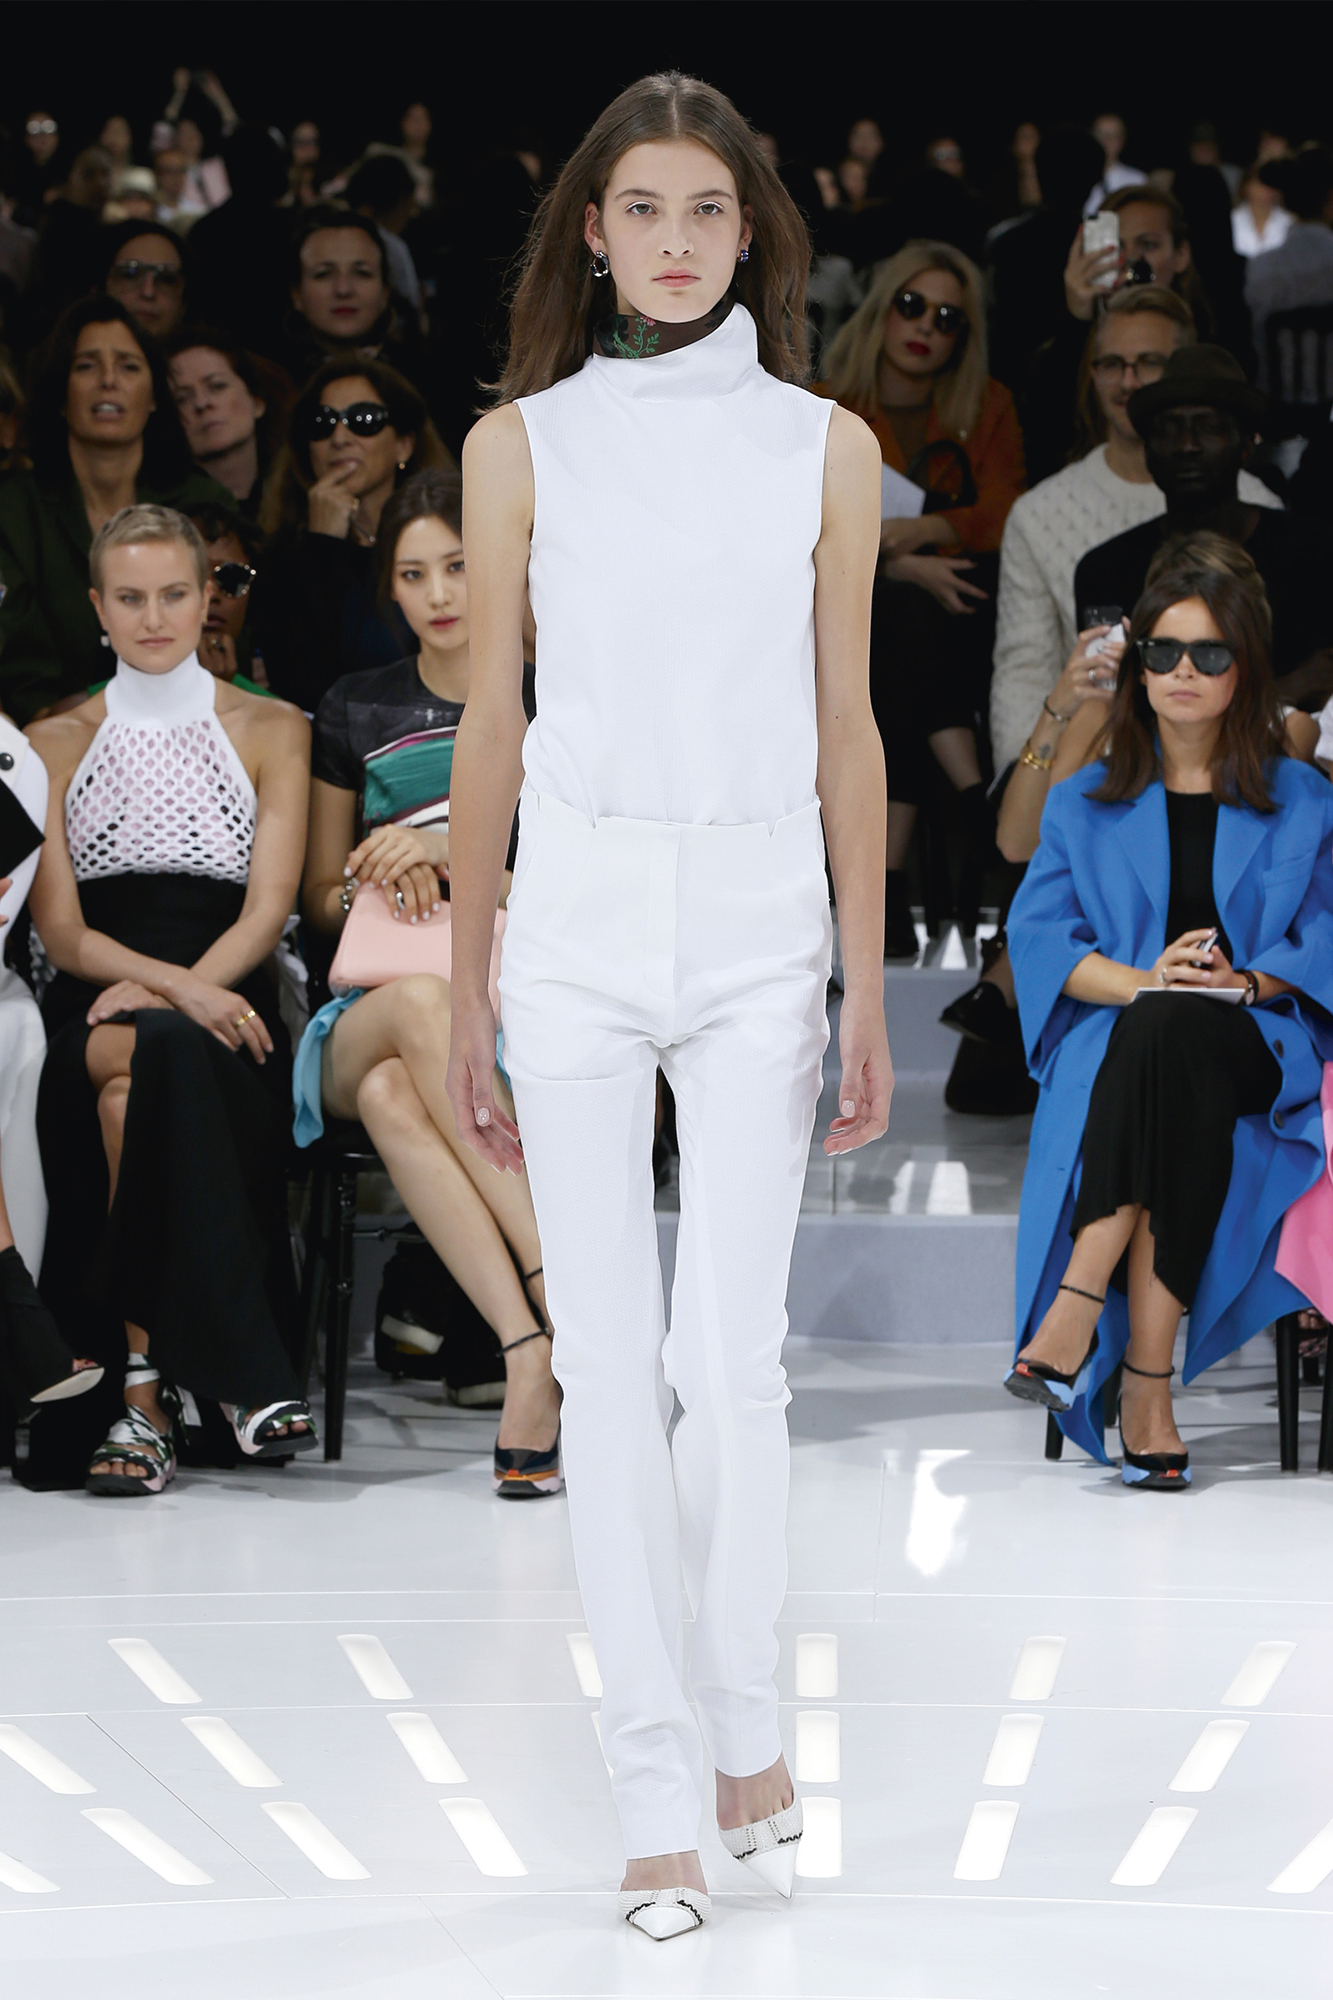 New Western Fashion Christian Dior Ready To Wear Dresses Spring Summer Collection 2015  (3)